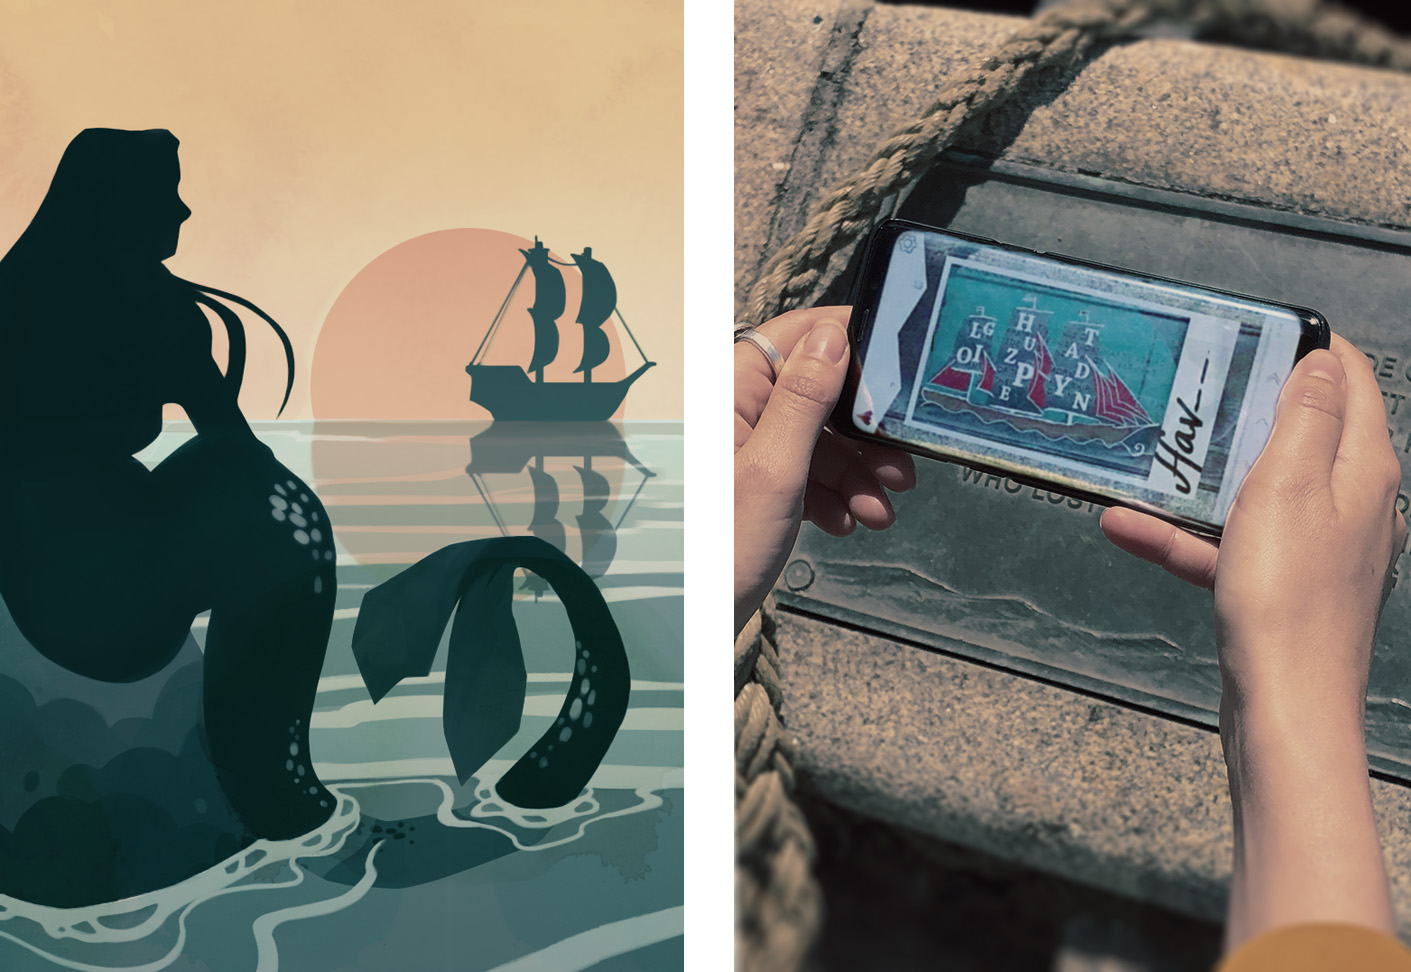 Two images, the first one is an illustration of The Little Mermaid sitting on her rock, looking out at the sea. In the second image, a person on a walking tour is holding up their smartphone. On the screen, a puzzle is visible